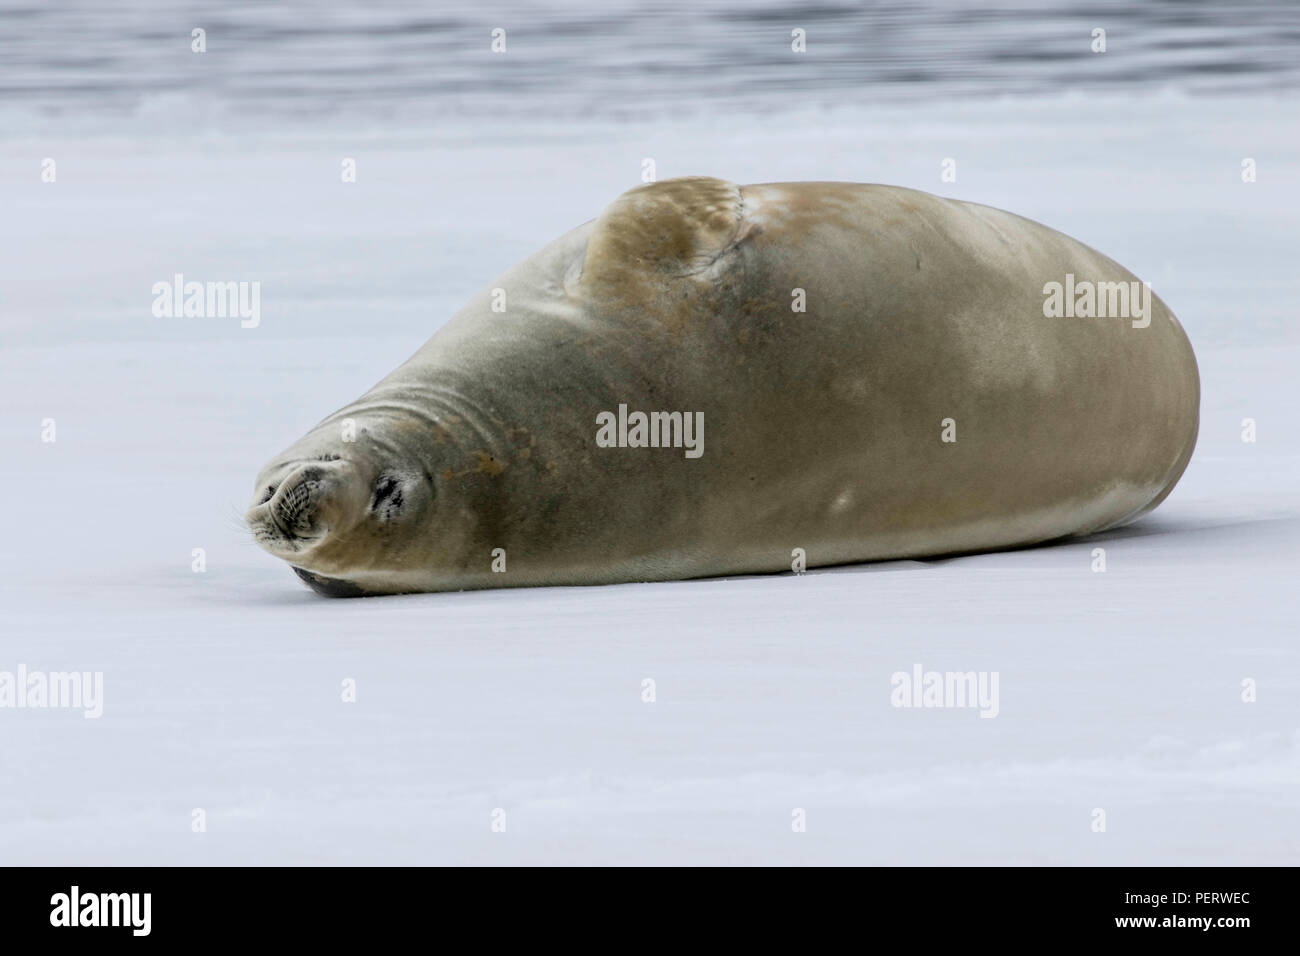 Crabeater seal in the snow in Antarctica - Stock Image